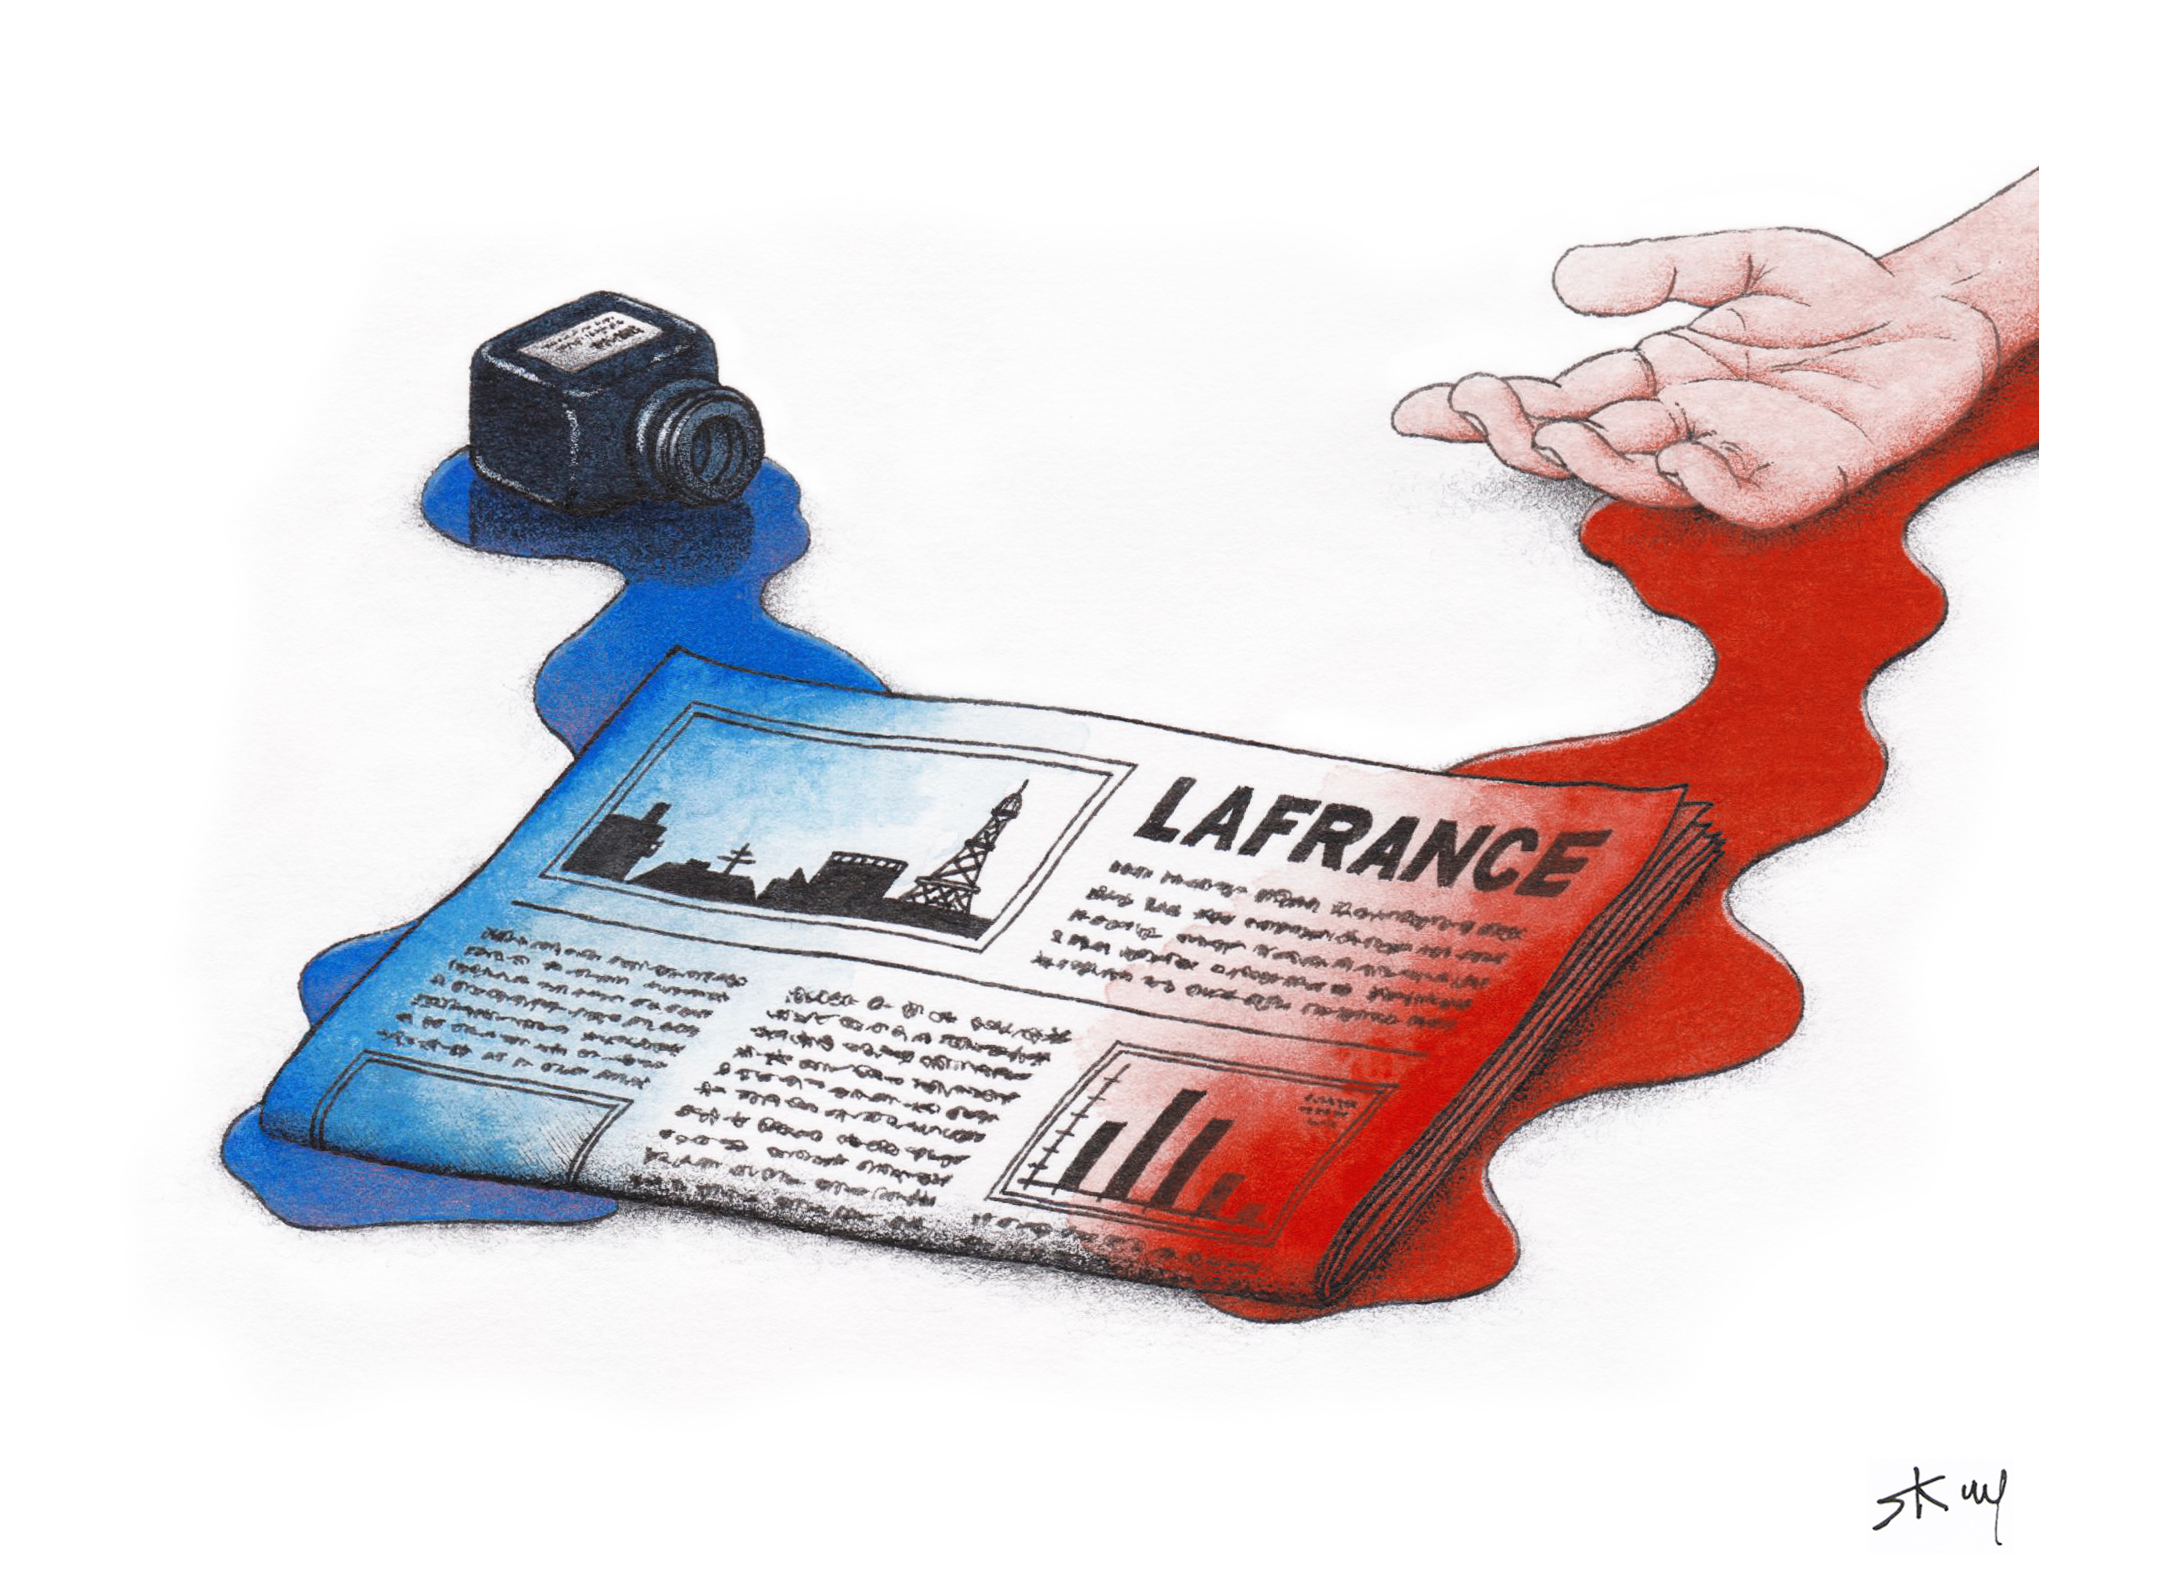 s.k.w.p@outlook.com dessin • #jesuischarlie n°2